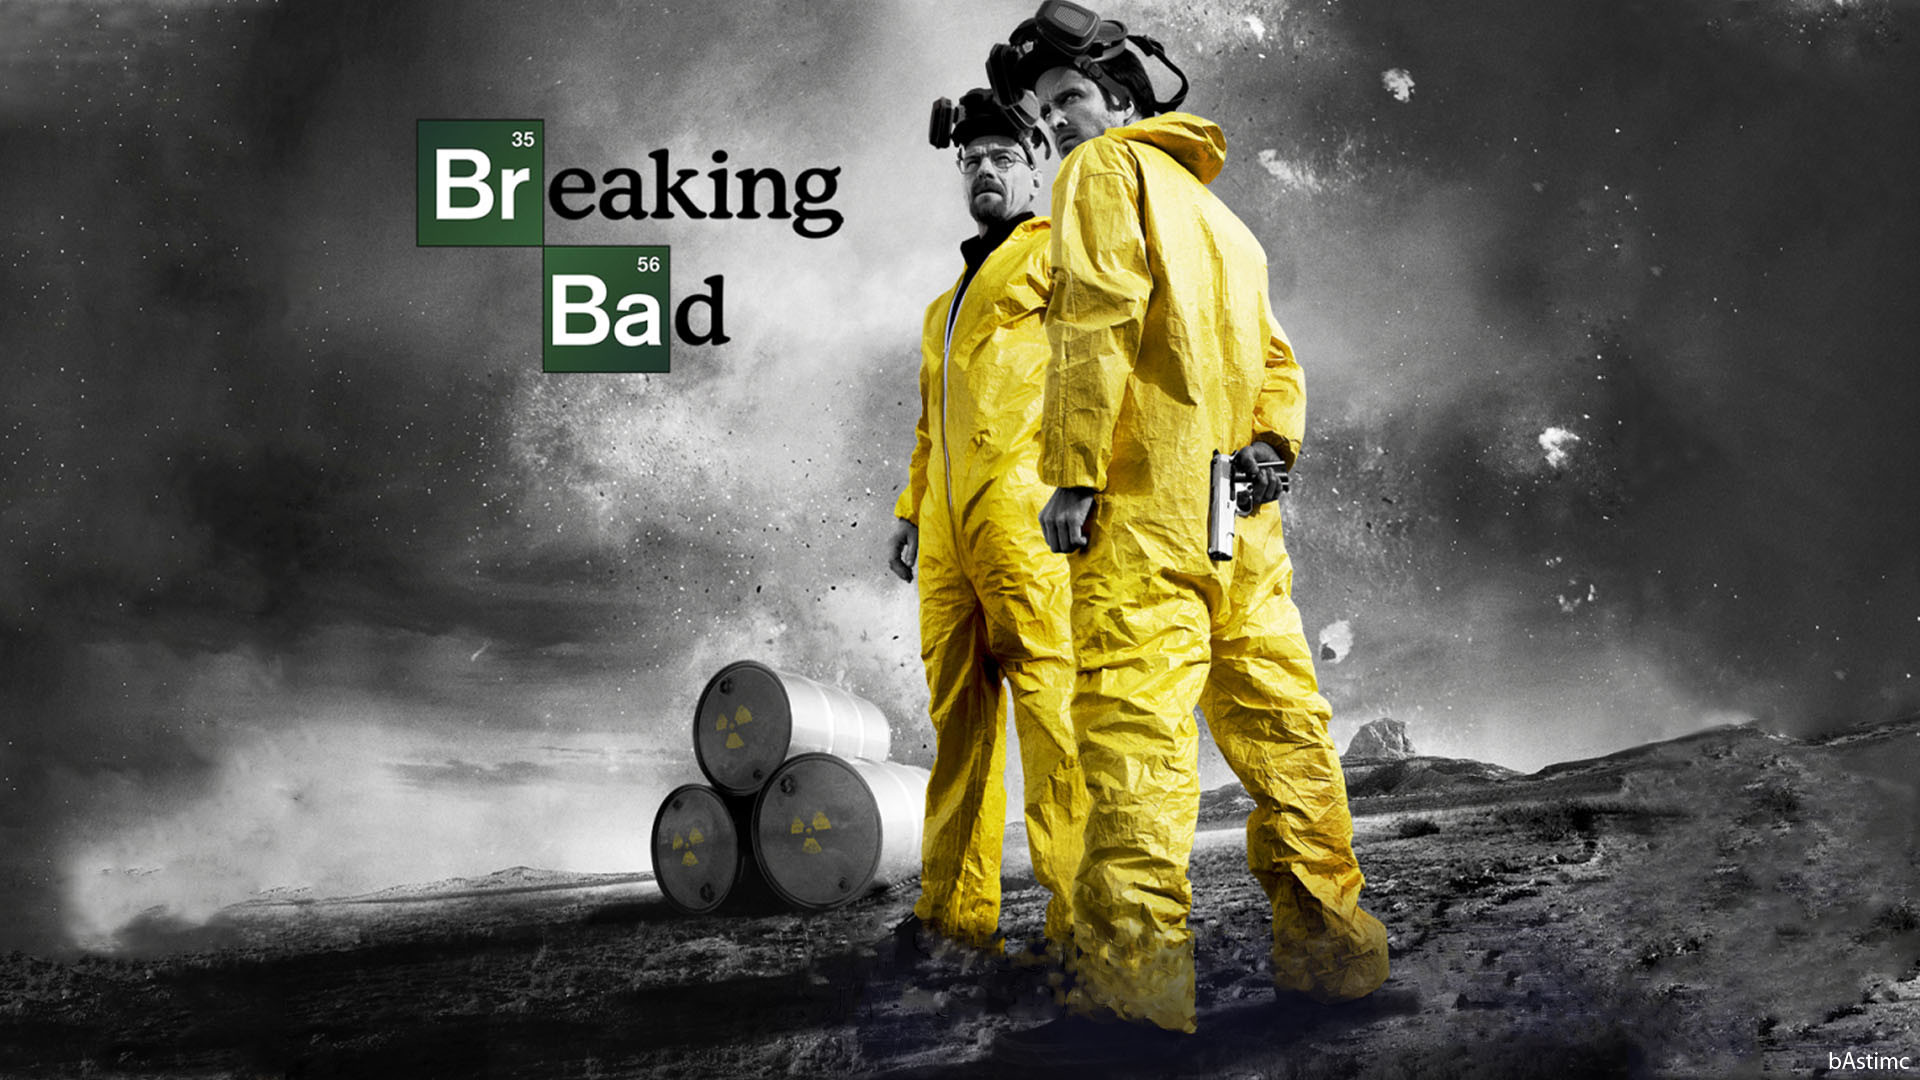 1920x1080 Breaking Bad Wallpaper by bAstimc Breaking Bad Wallpaper by bAstimc